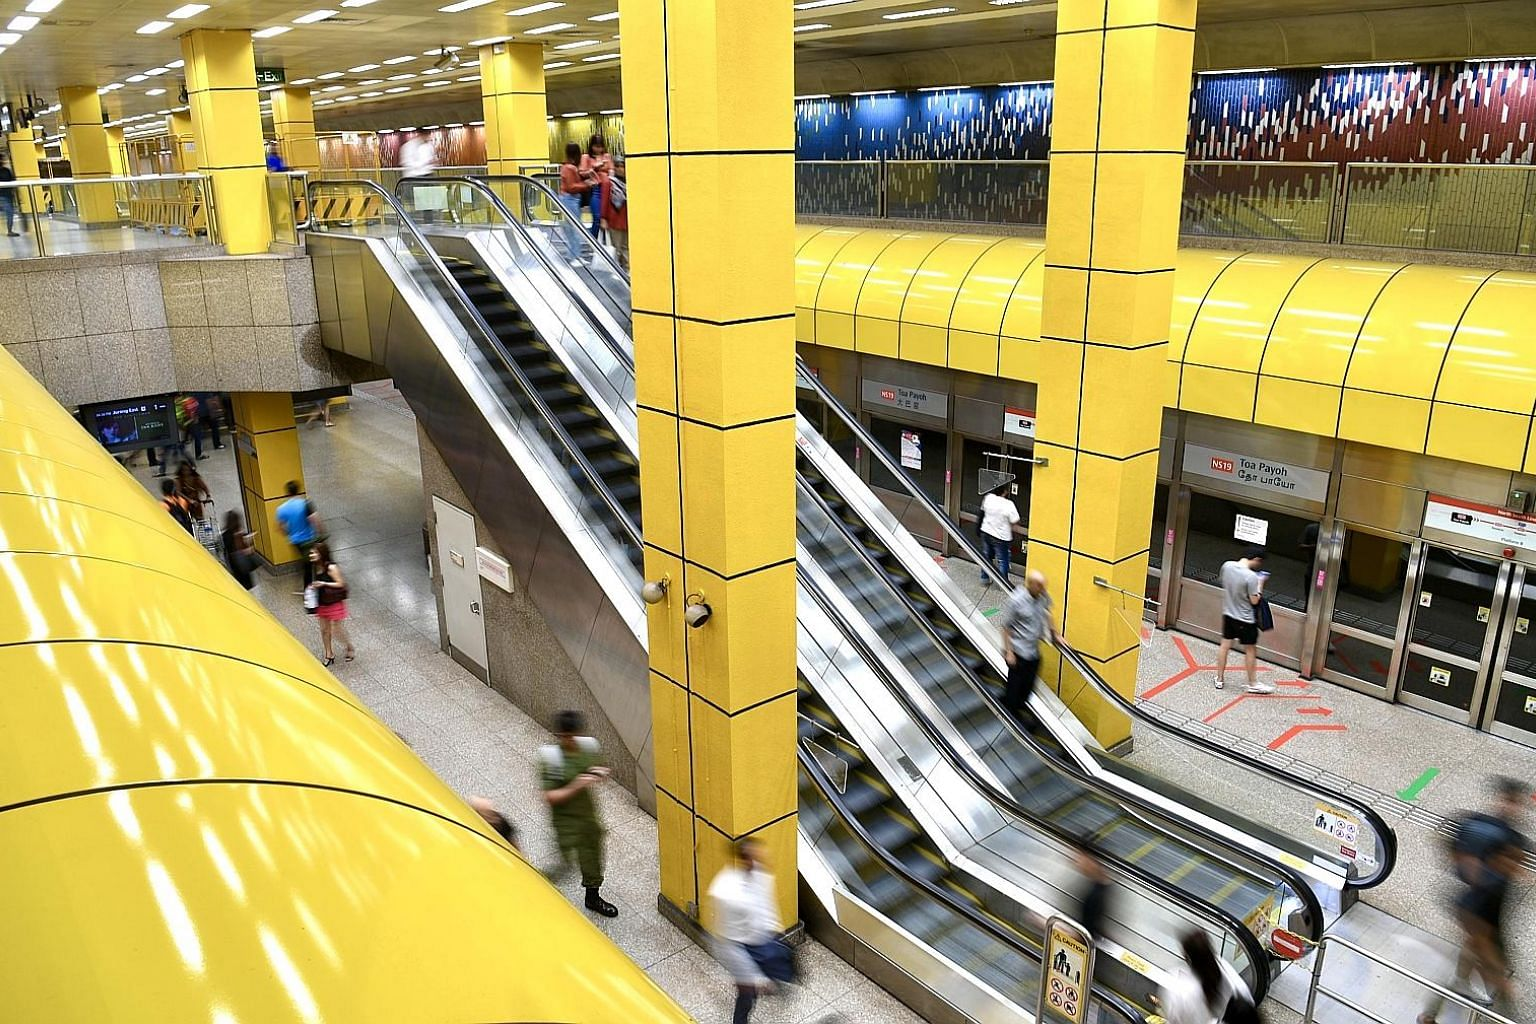 A double-volume space featuring a lofty ceiling is a hallmark of the Toa Payoh station.